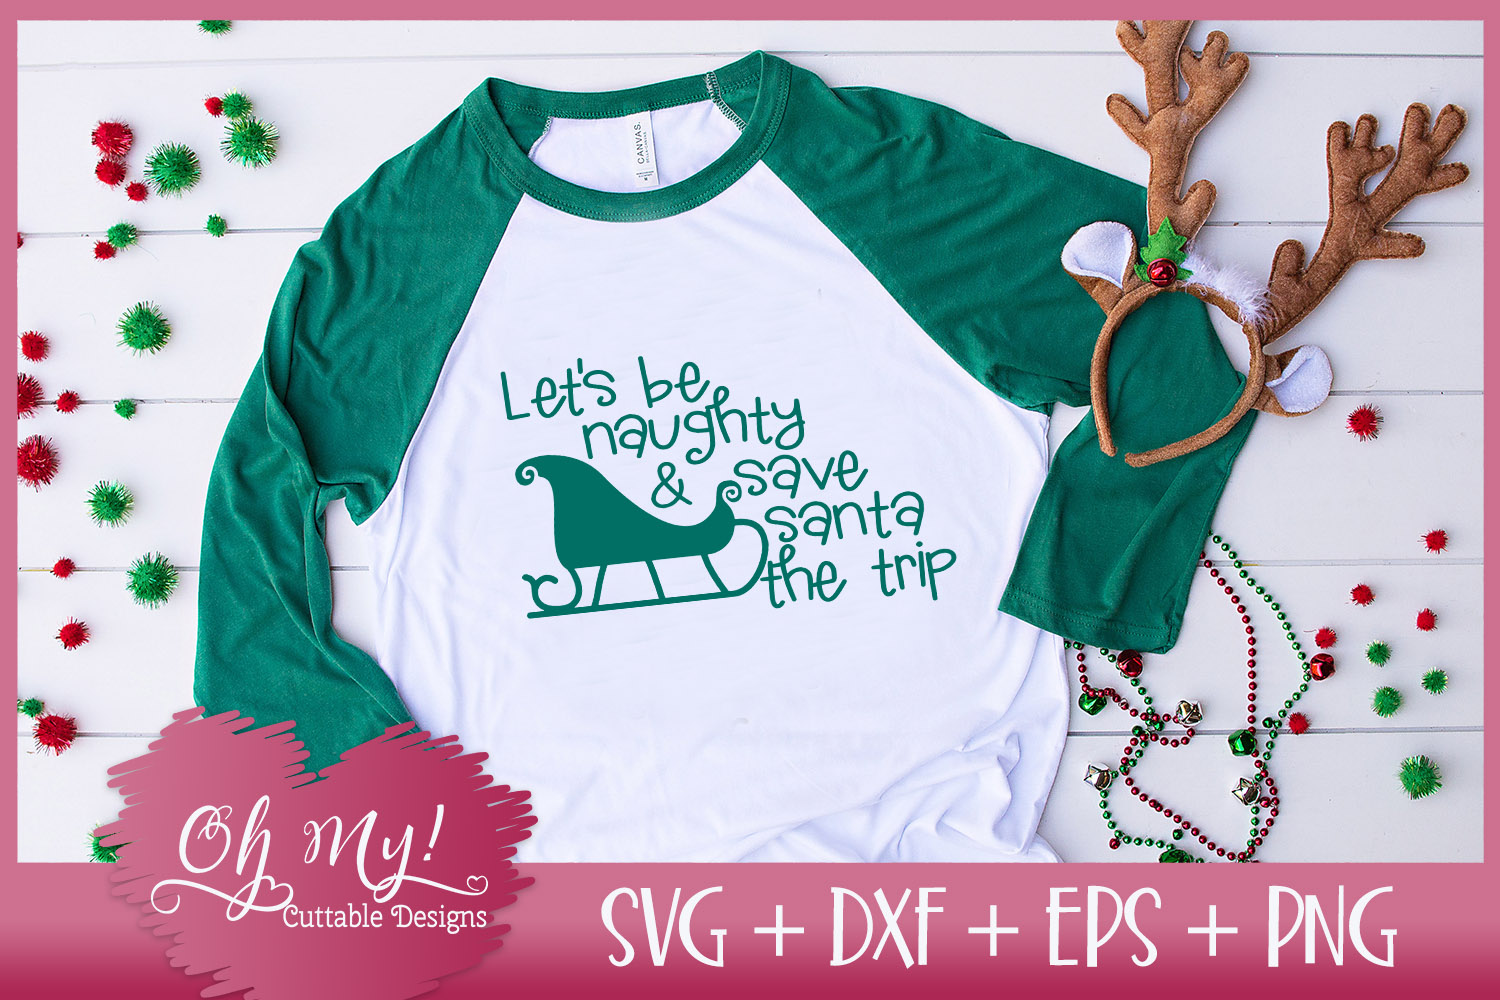 Let's Be Naughty and Save Santa The Trip - SVG EPS DXF PNG example image 3